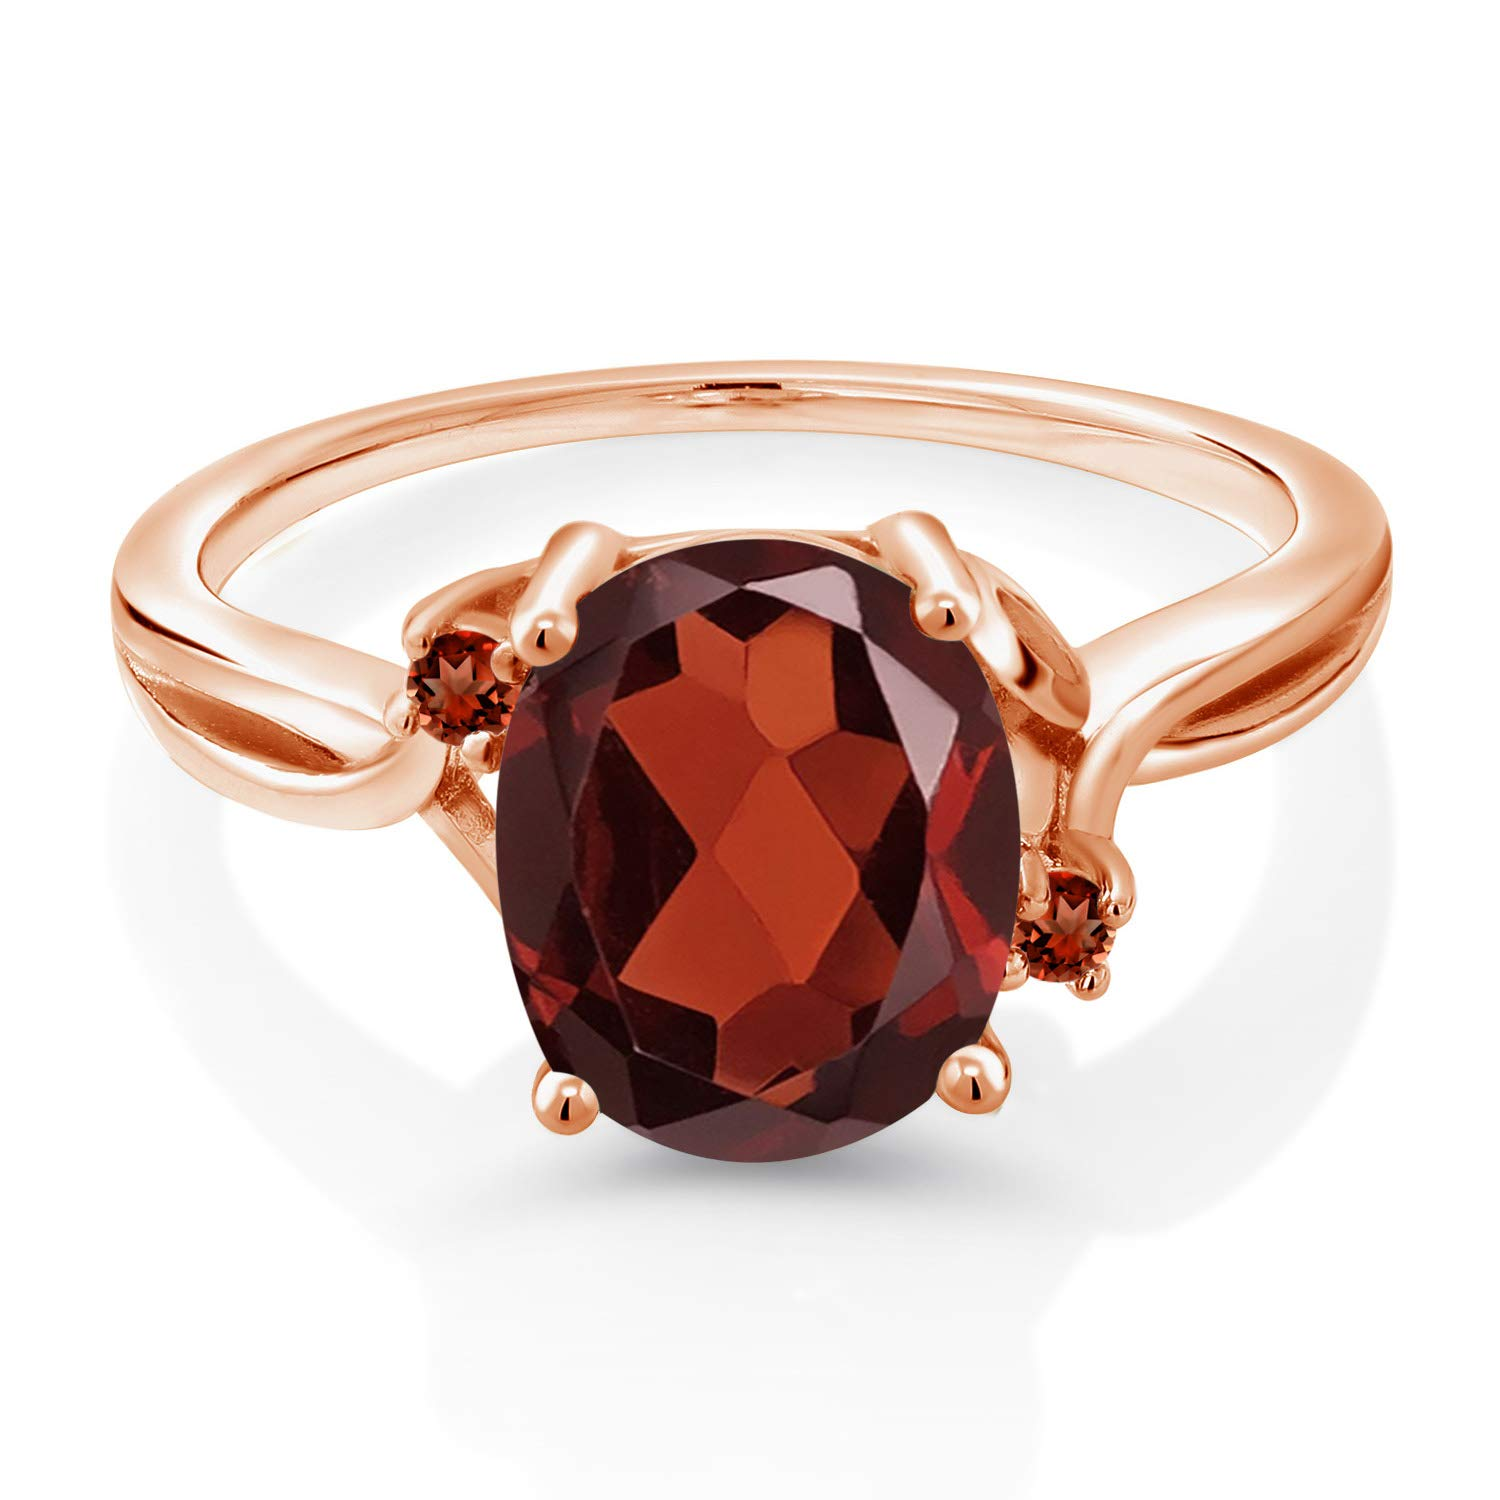 Gem Stone King 2.54 Ct Oval Red Garnet 14K Rose Gold Ring Available 5,6,7,8,9